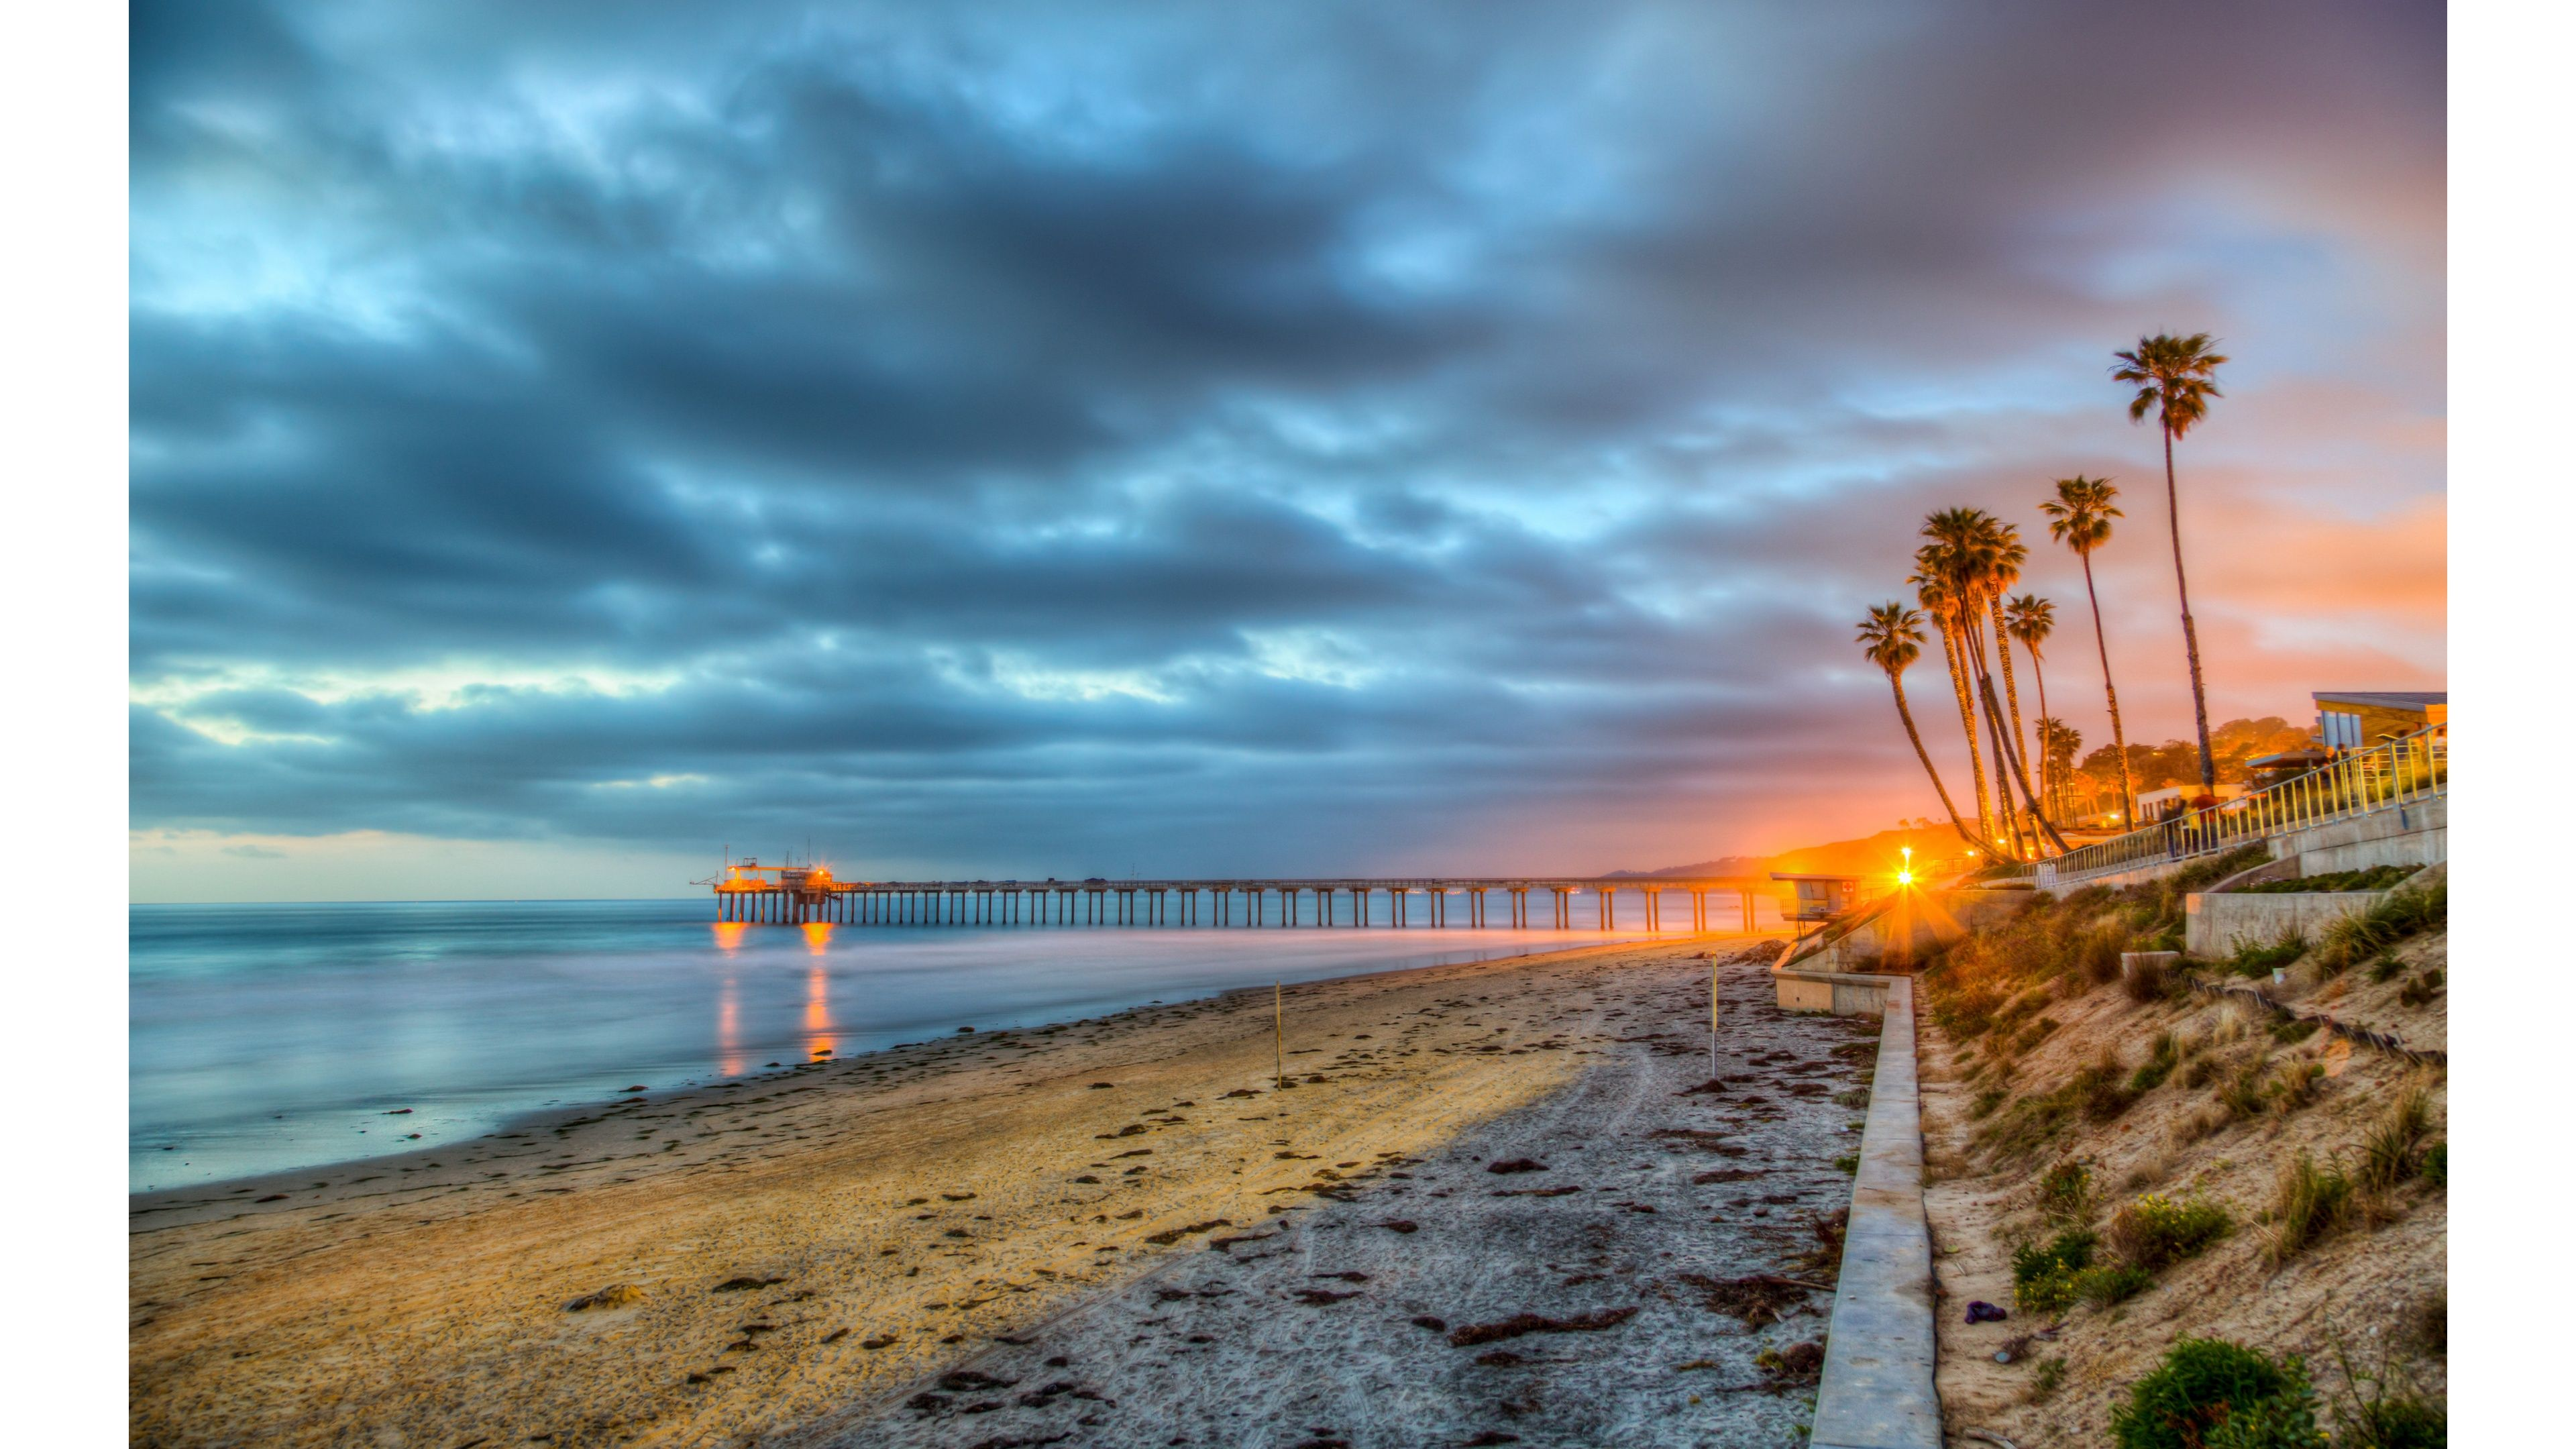 4k Sunset Wallpaper Beach Wallpaper San Diego Beach